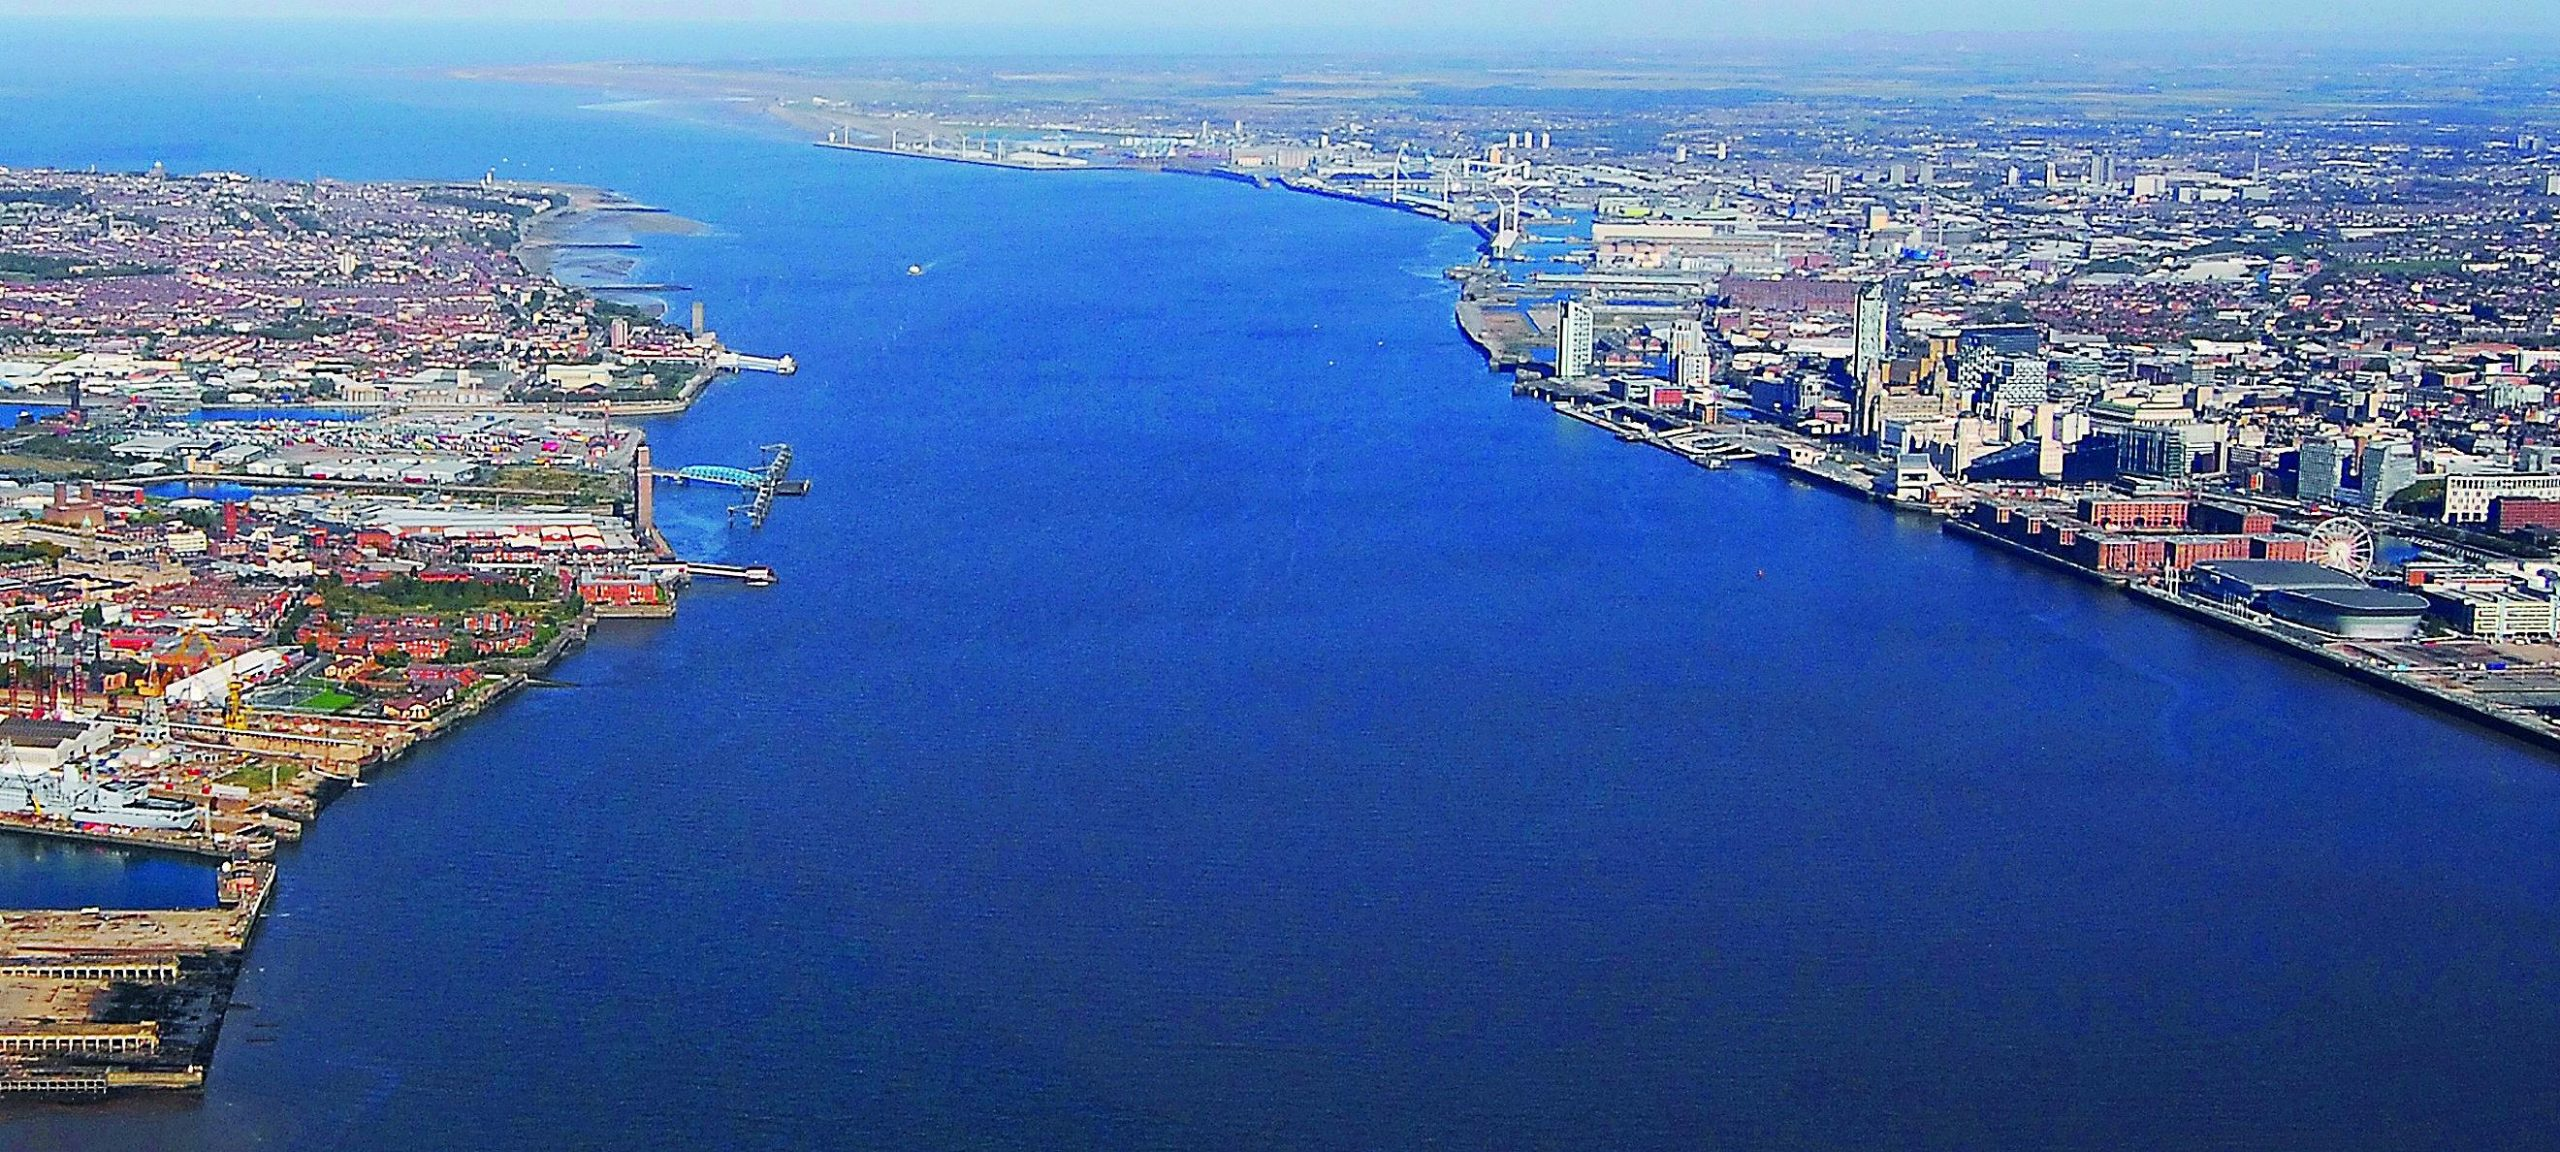 River Mersey aerial view